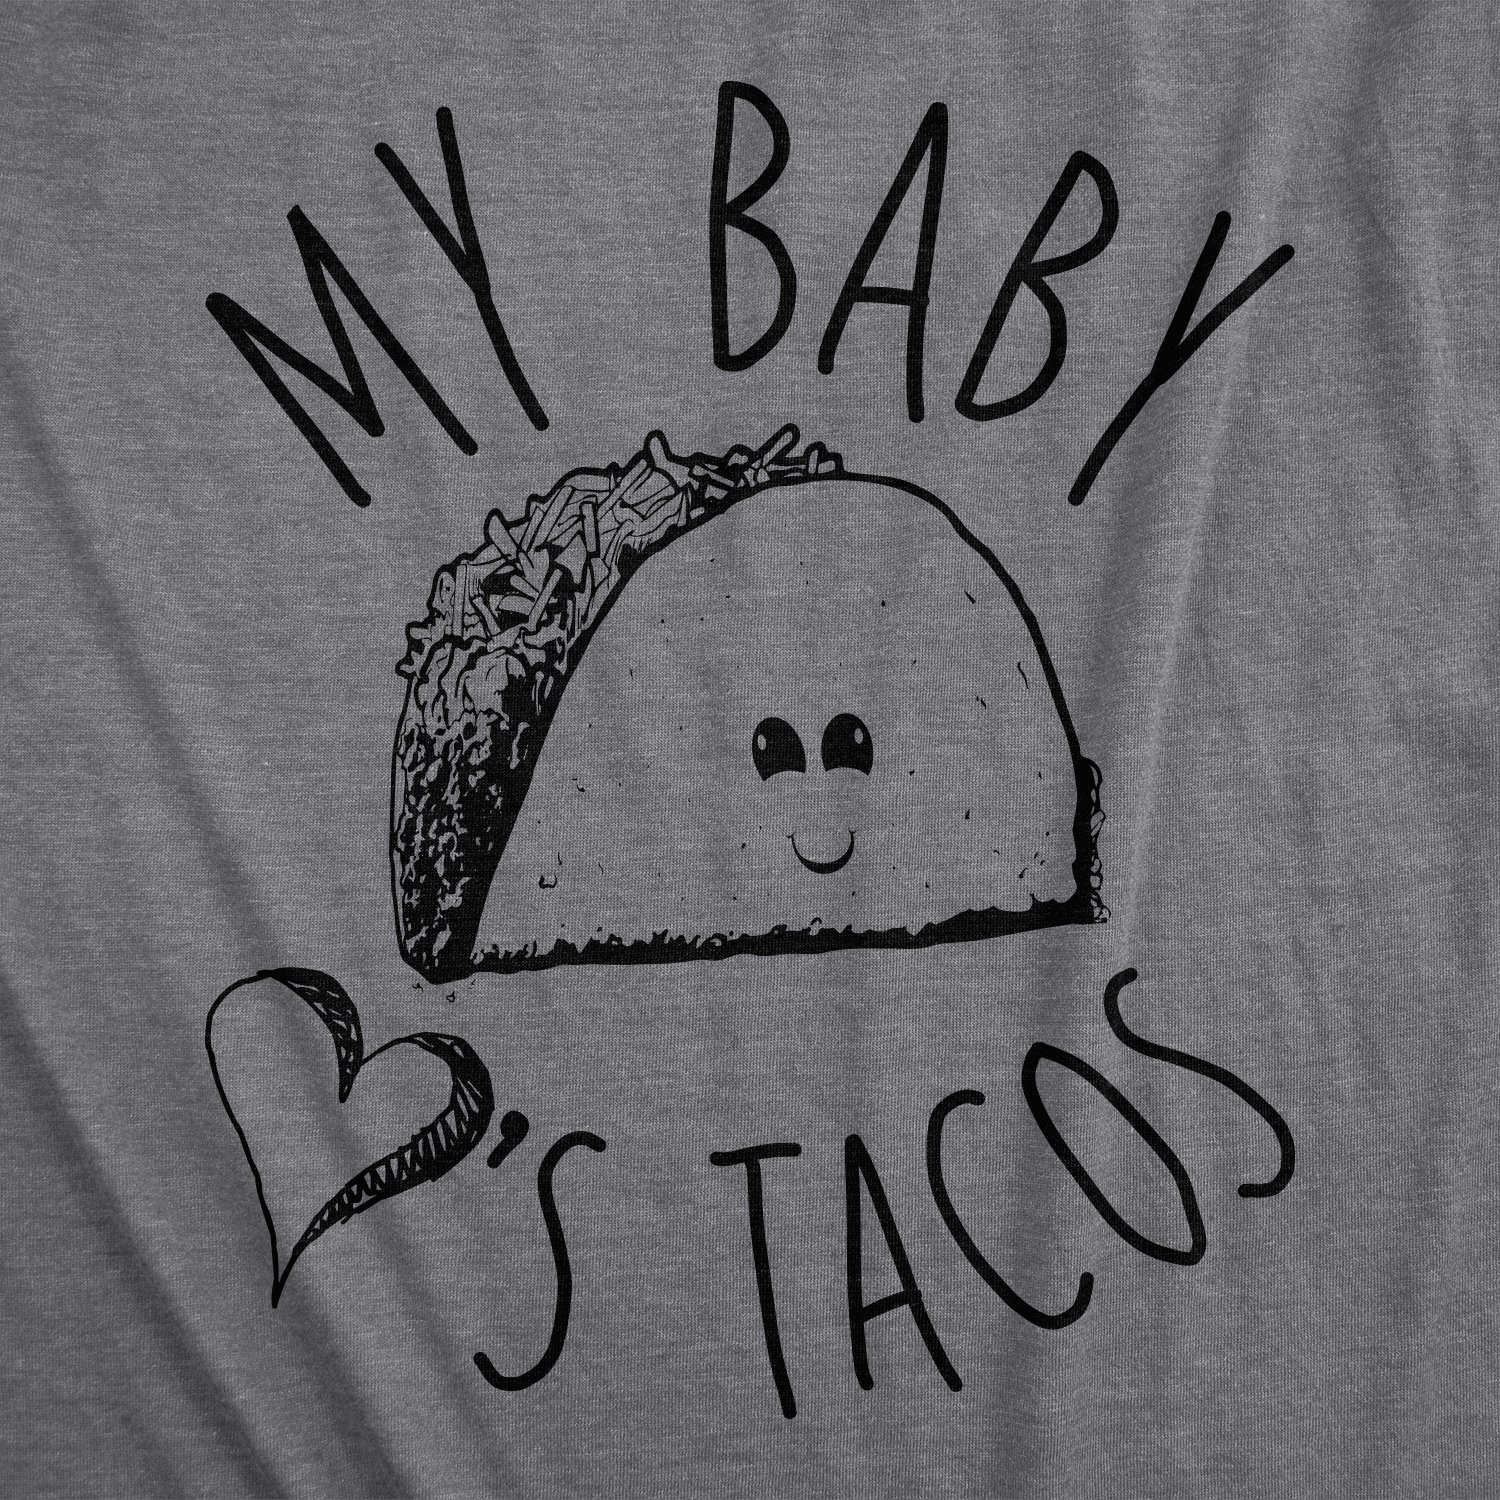 Maternity My Baby Loves Tacos Funny T Shirts Cute Announce Pregnancy Im Pregnant Bump T Shirt (Heather Purple) -S by Crazy Dog T-Shirts (Image #2)